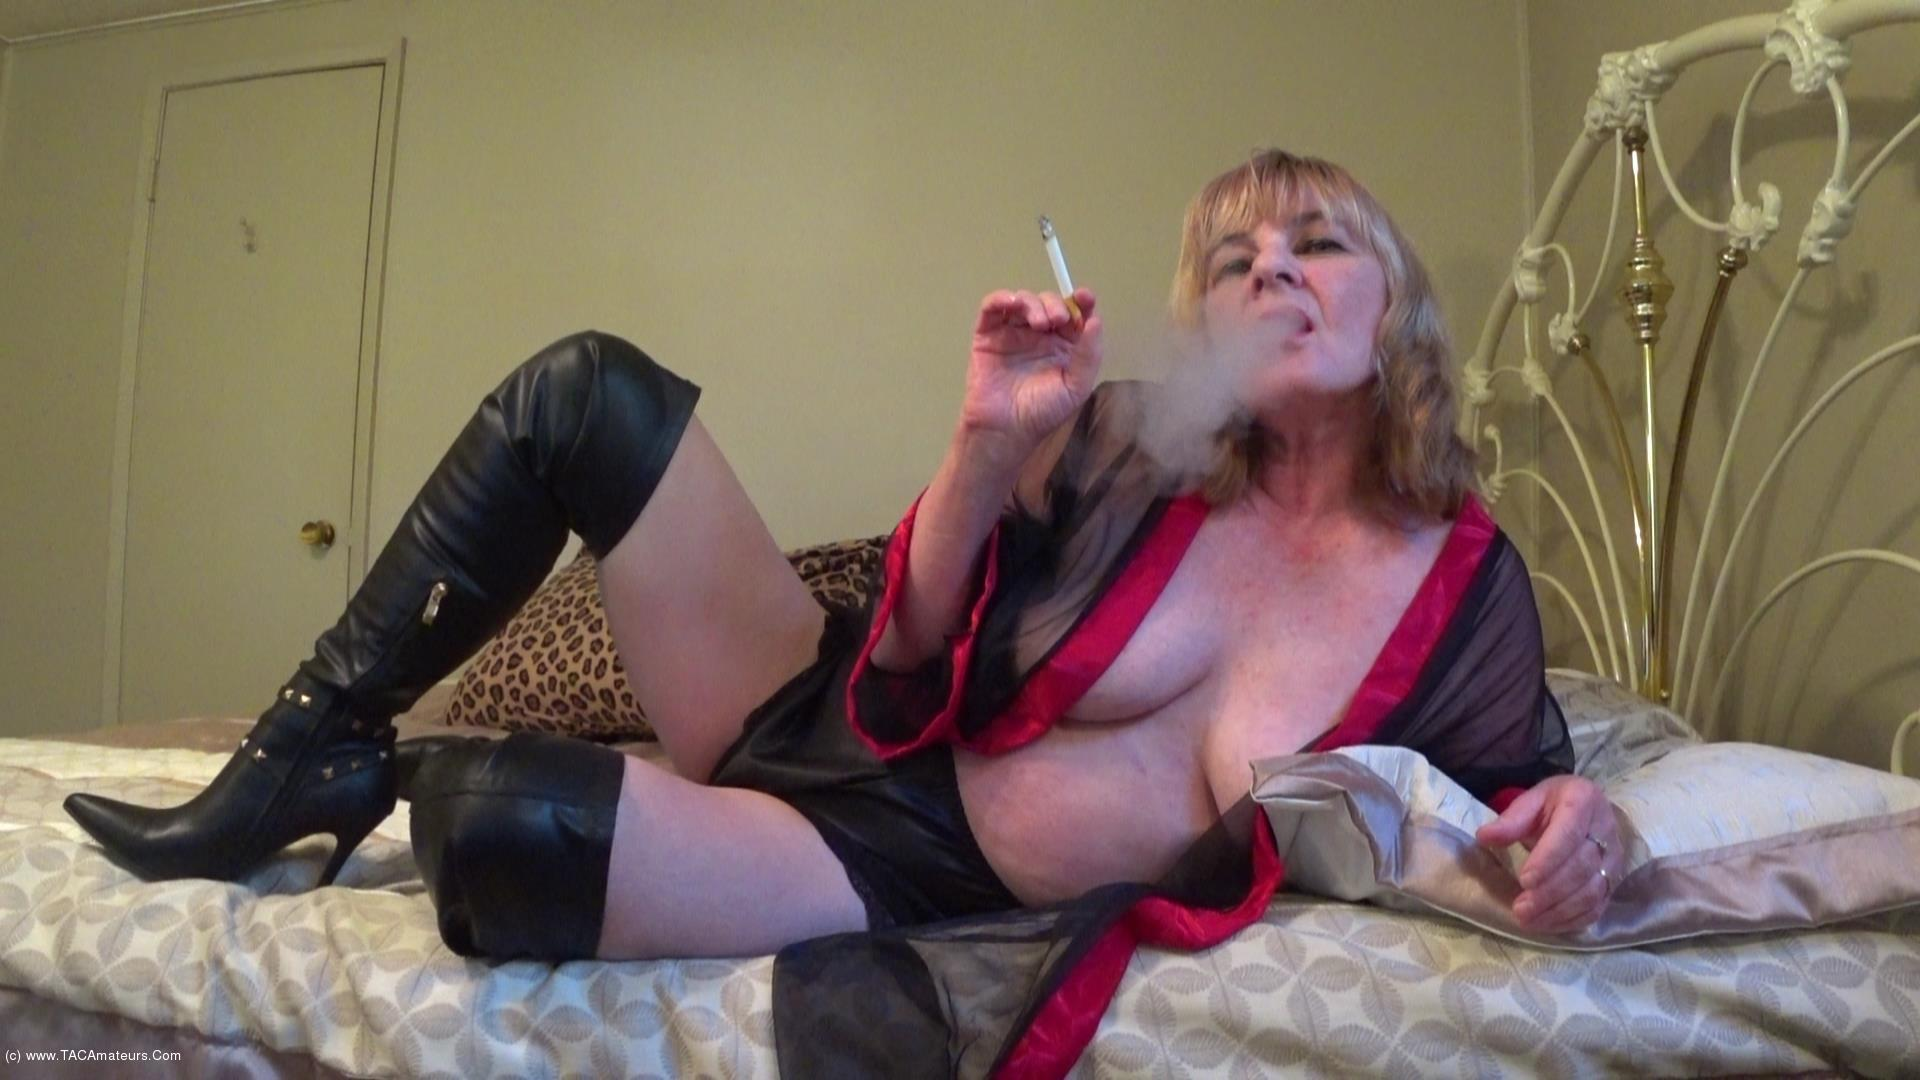 CougarBabeJolee - In Lingerie & Boots, Smoking While You Stroke scene 3